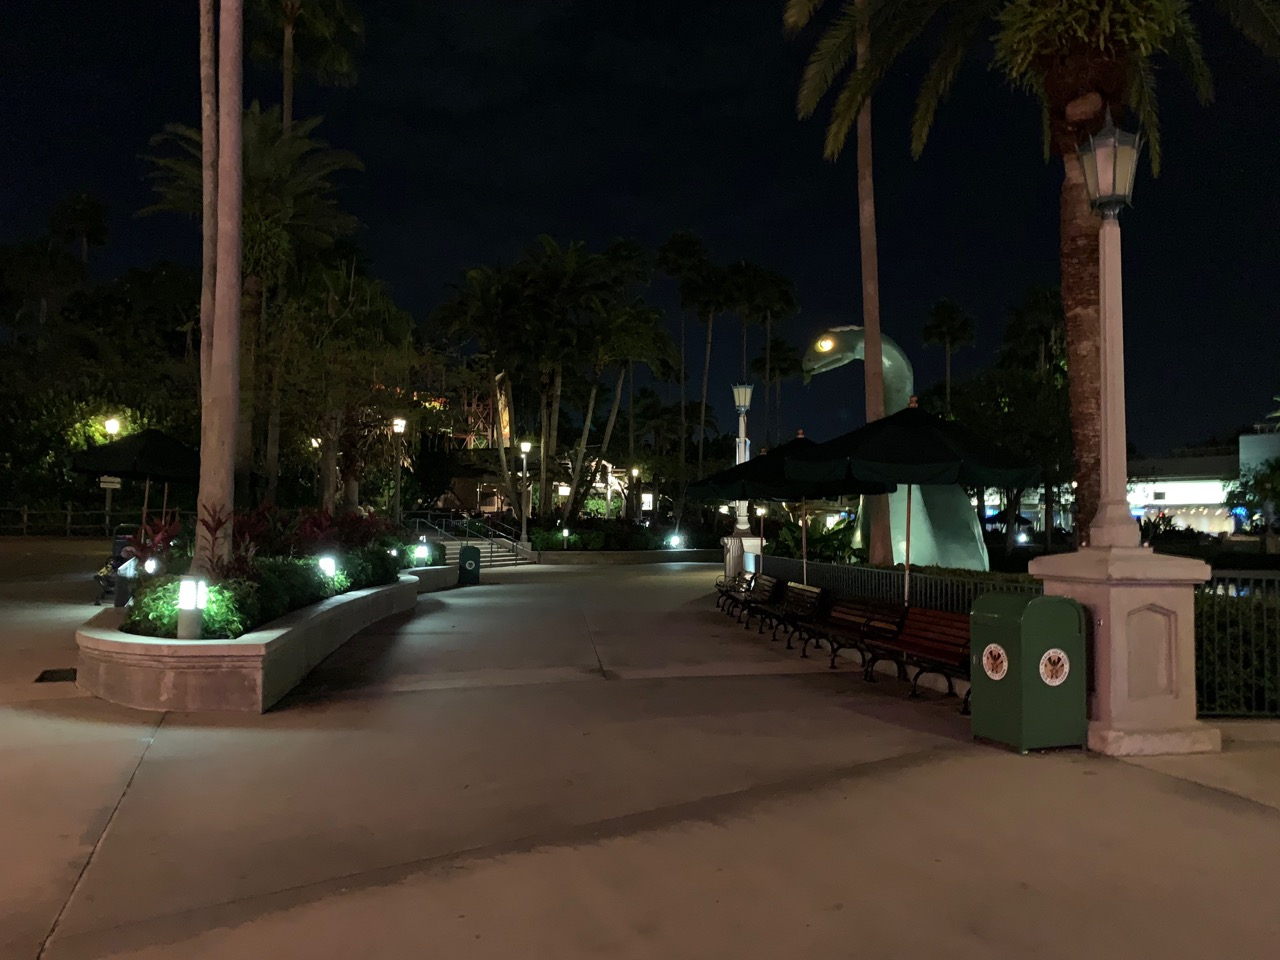 disney world hollywood studios after hours review 45 echo lake.jpeg